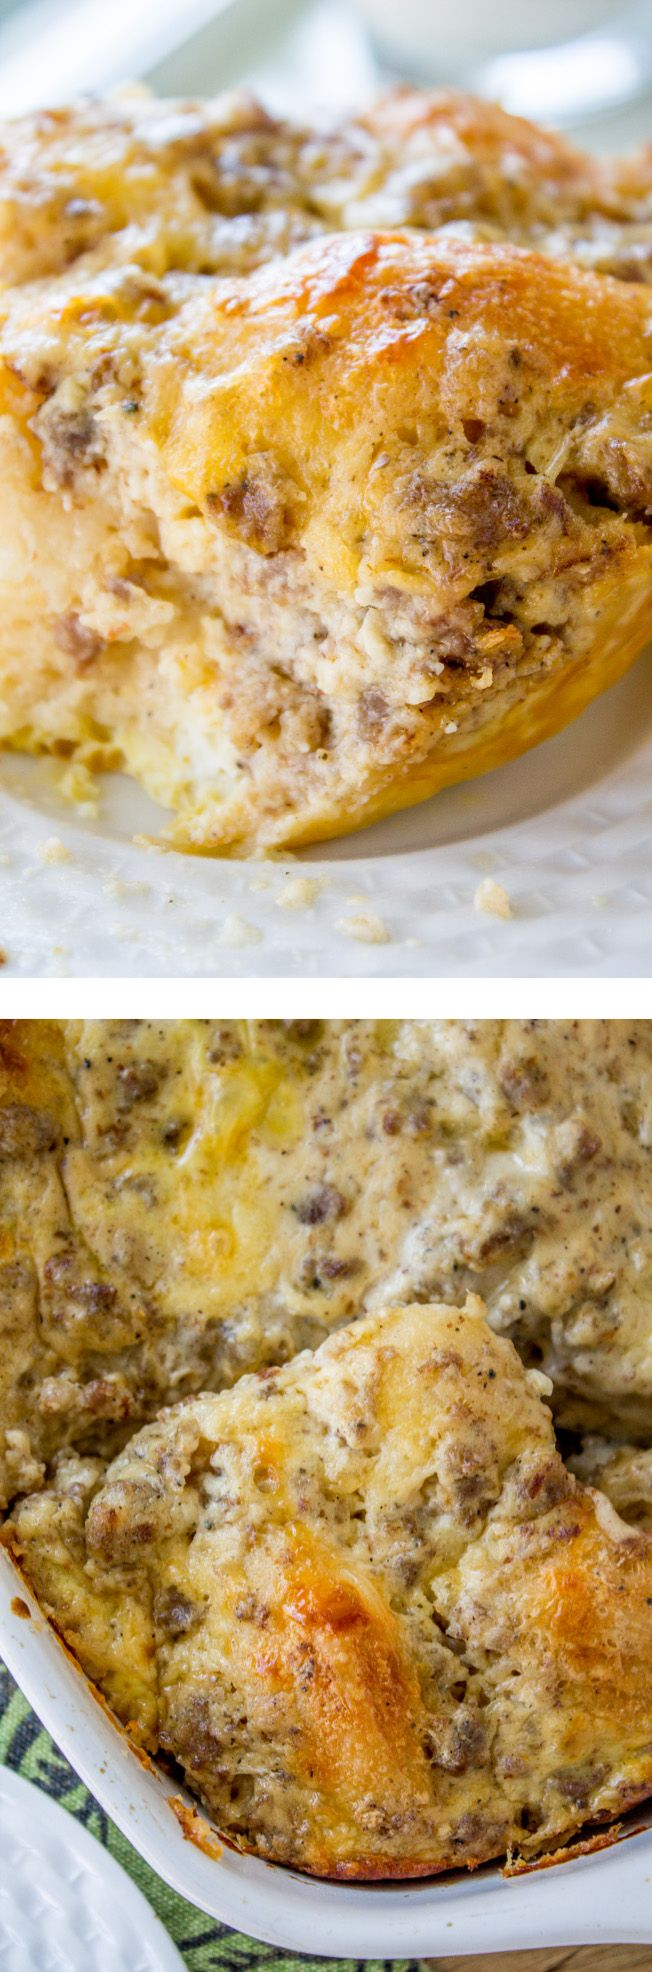 All Things Savory: Overnight Biscuits and Gravy Casserole - The Food ...